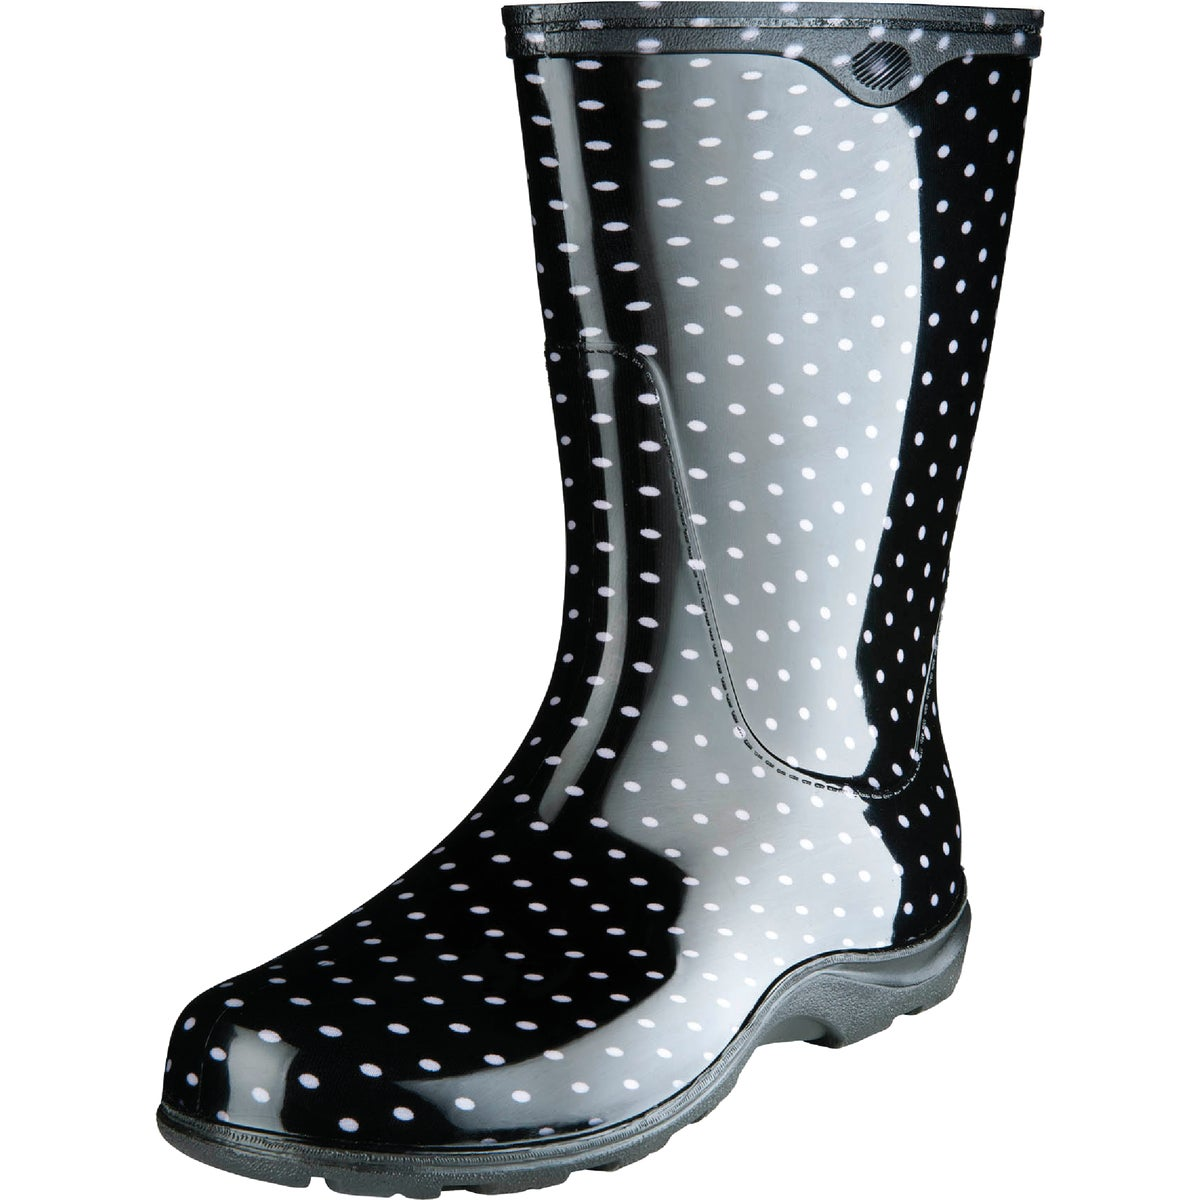 SZ 8 MID-BLACK TALLBOOT - 5002BK08 by Principle Plastics